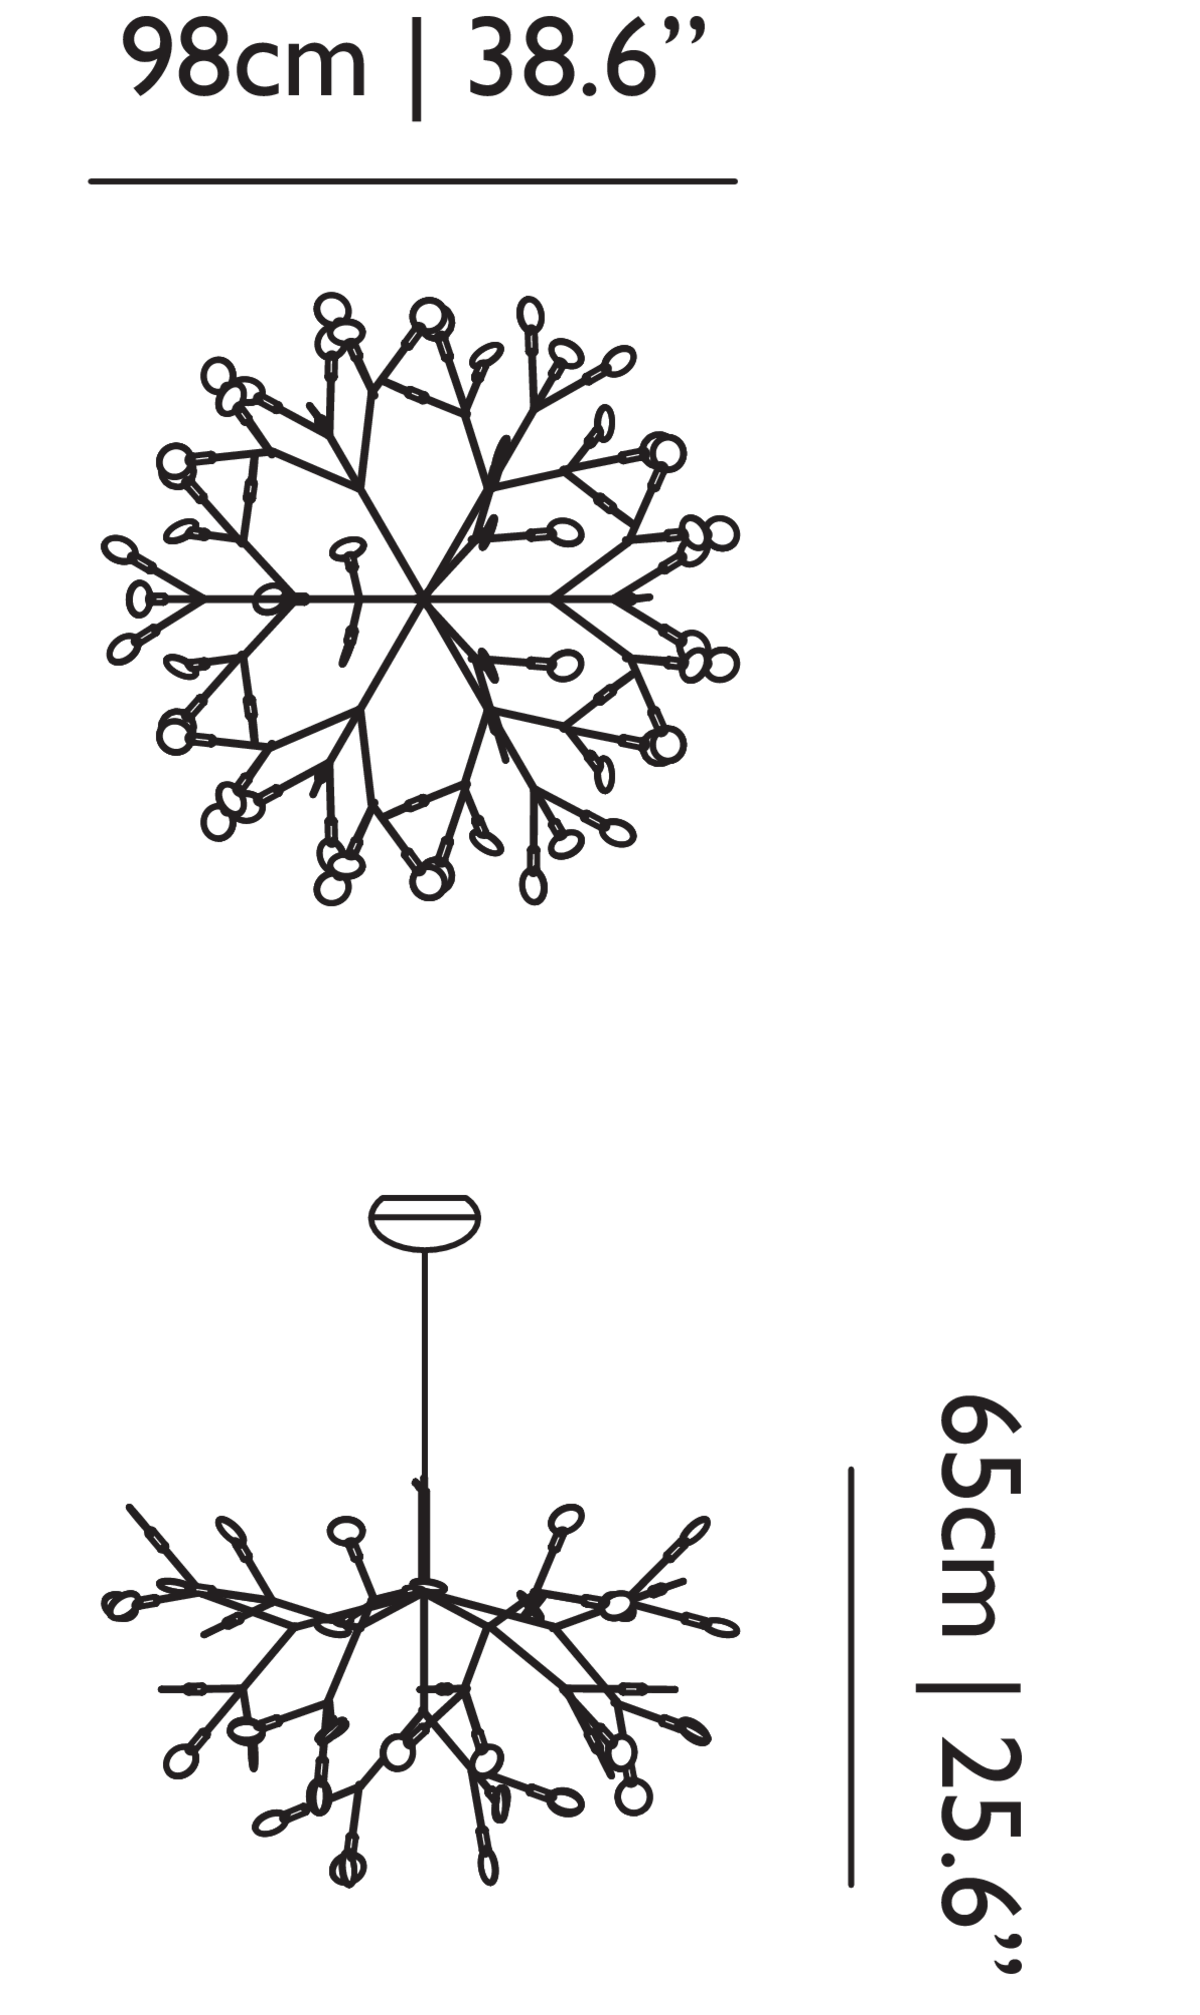 Heracleum II suspension light linedrawing with dimensions